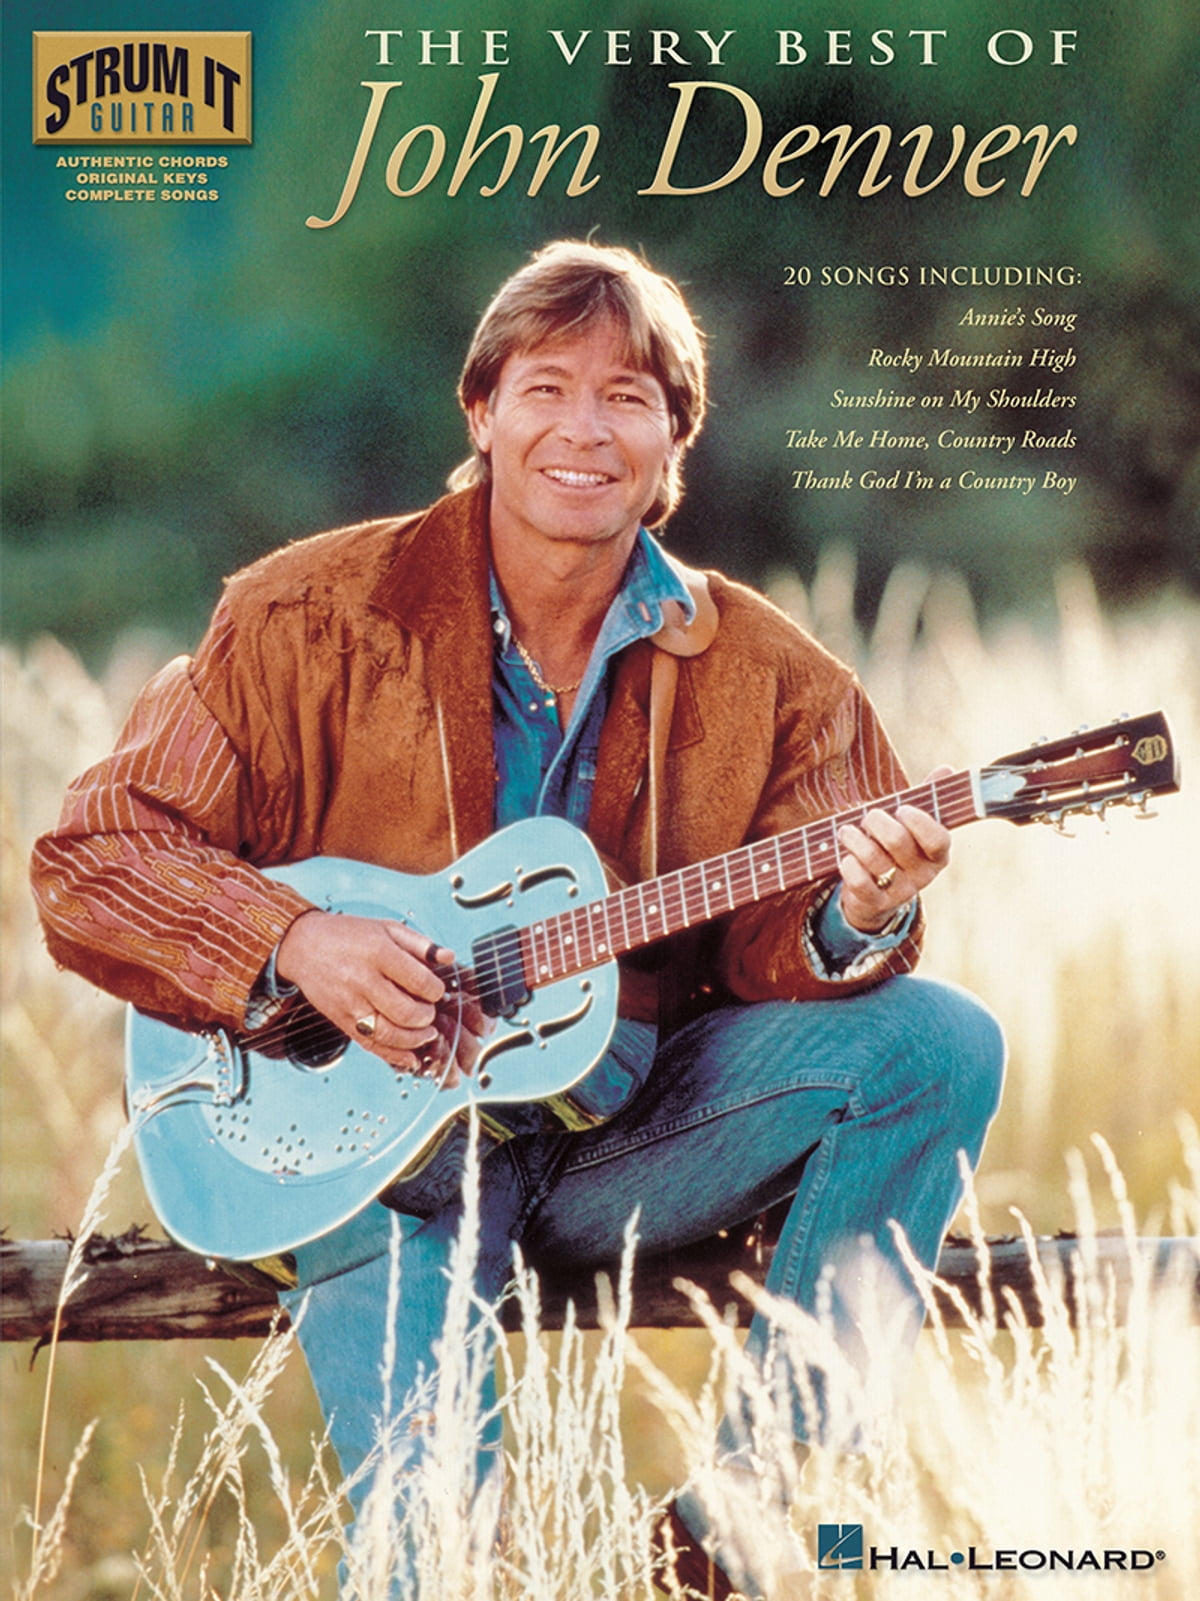 The very best of john denver songbook ebook by john denver the very best of john denver songbook ebook by john denver 9781603788915 rakuten kobo hexwebz Image collections